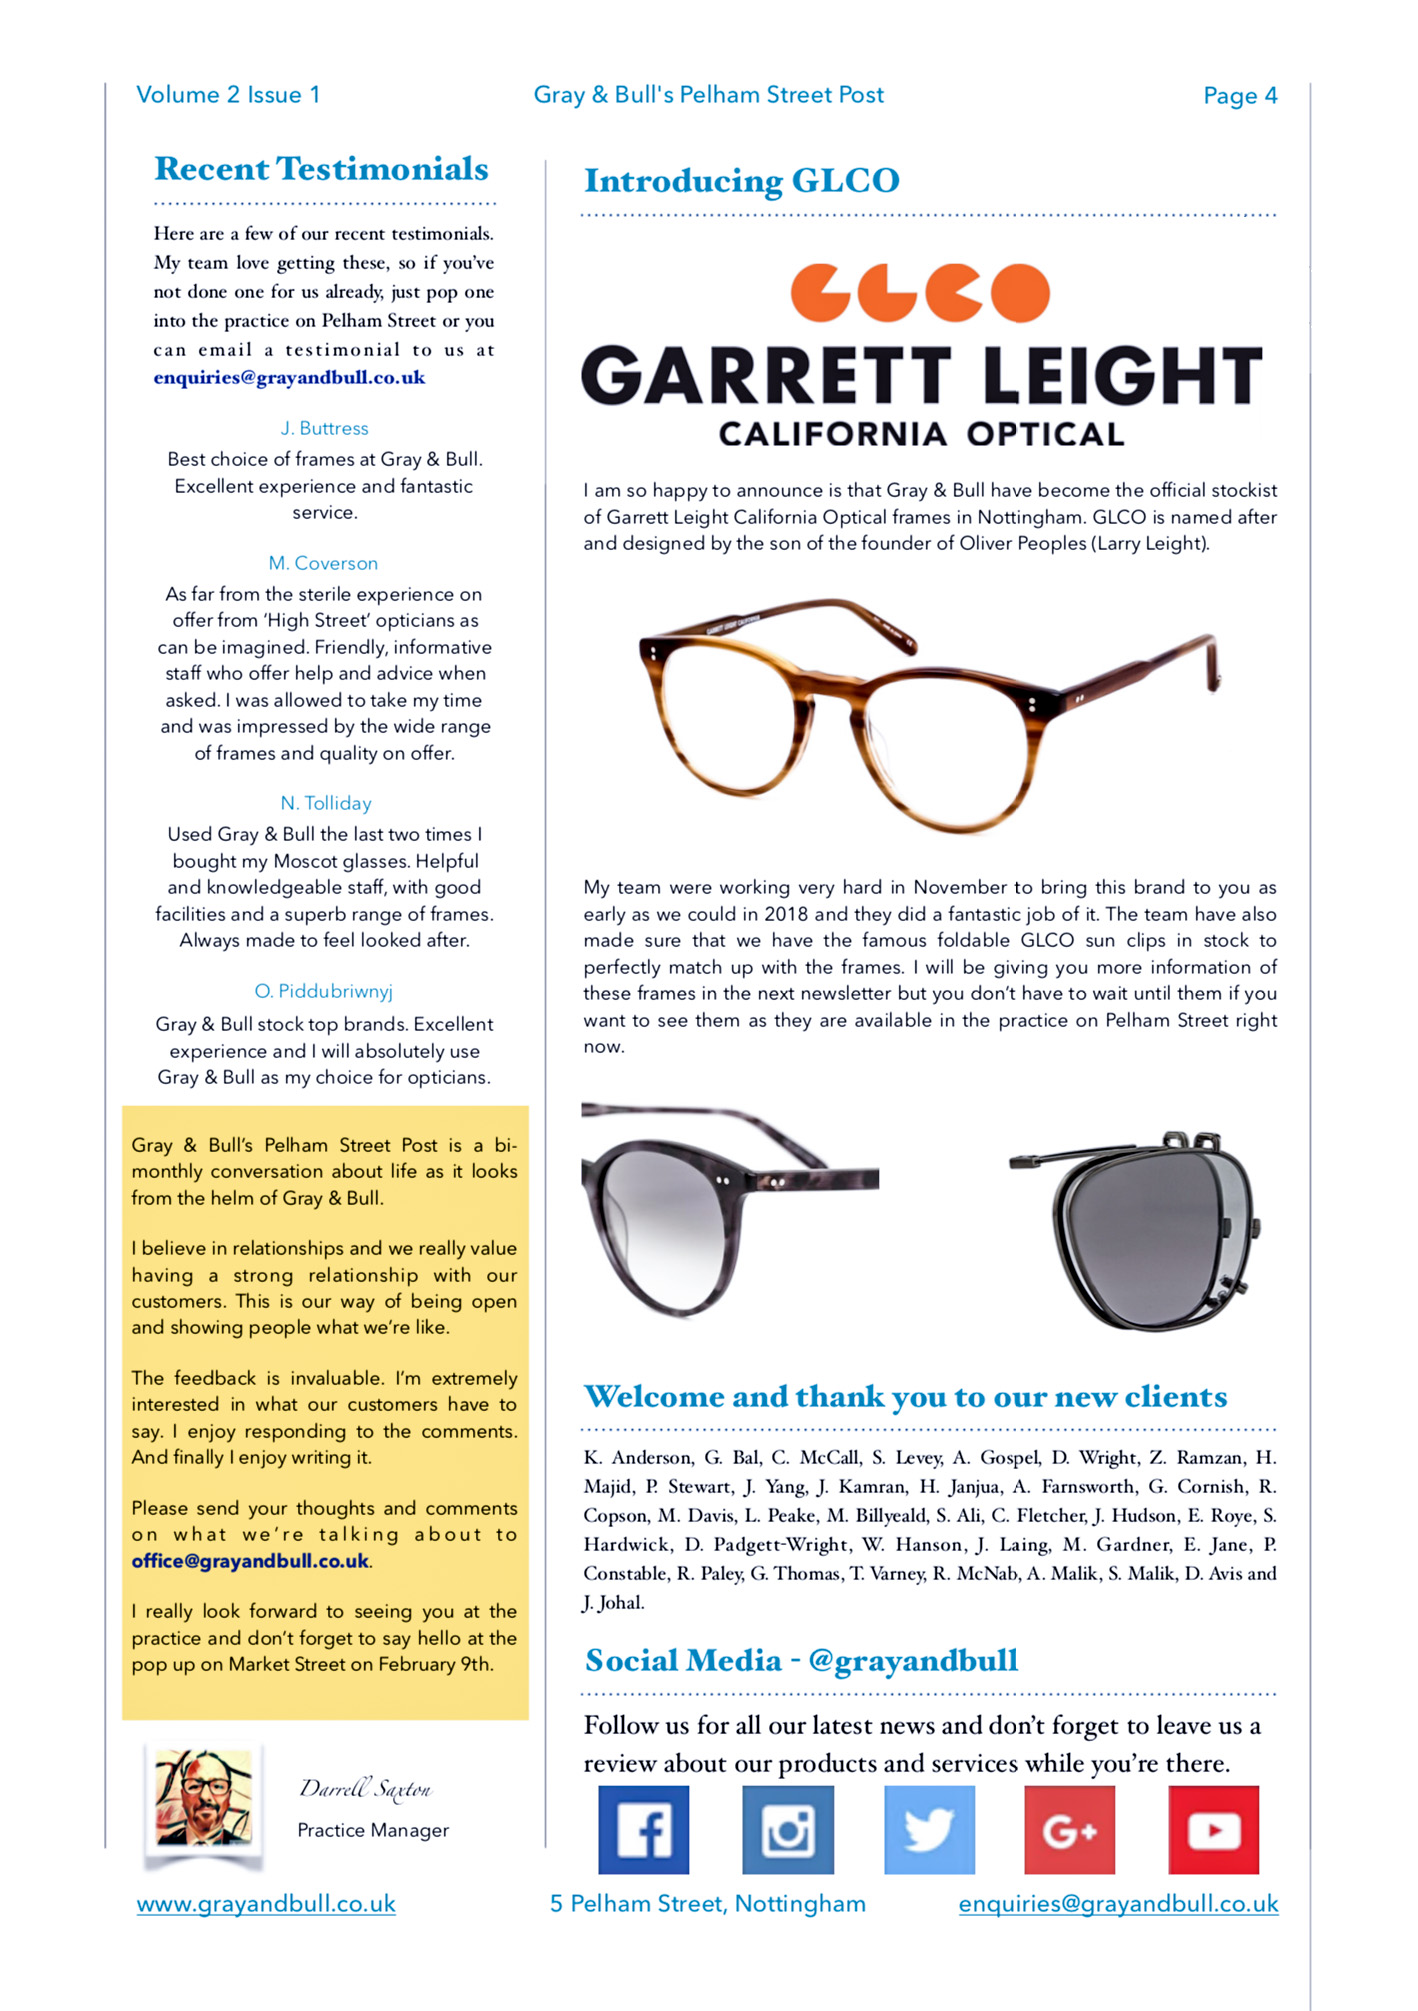 Pelham Street Post Testimonial Garrett Leight New Clients Social Media